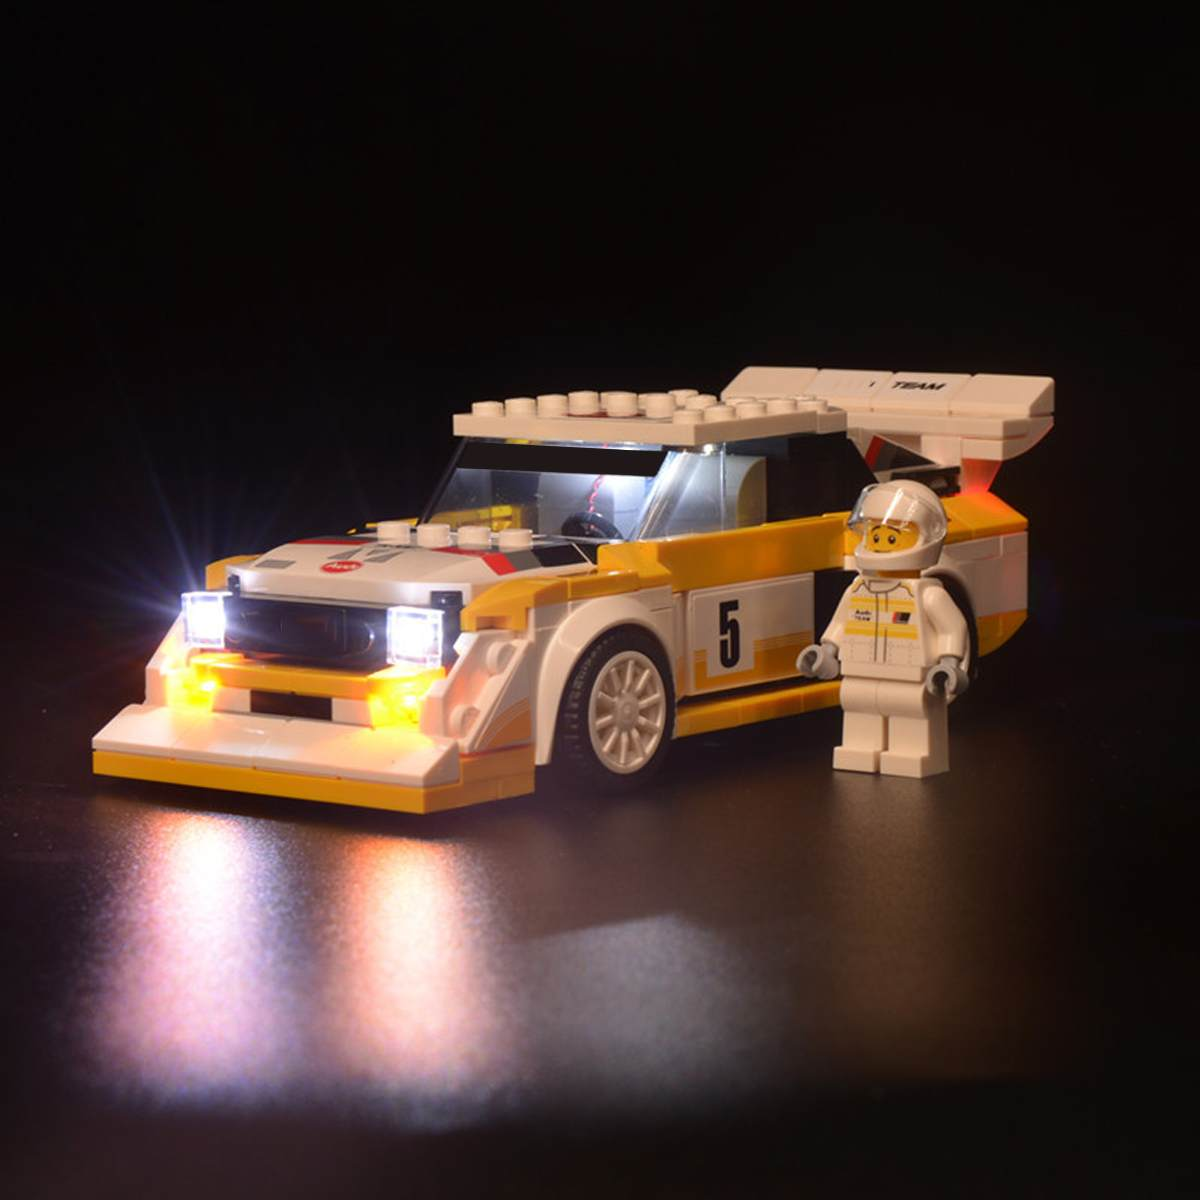 LED Light Up Kit For 76897 For Audi 1985 Sport For Quattro S1 Speed For Champions Car Brick Toy (Model Not Included)